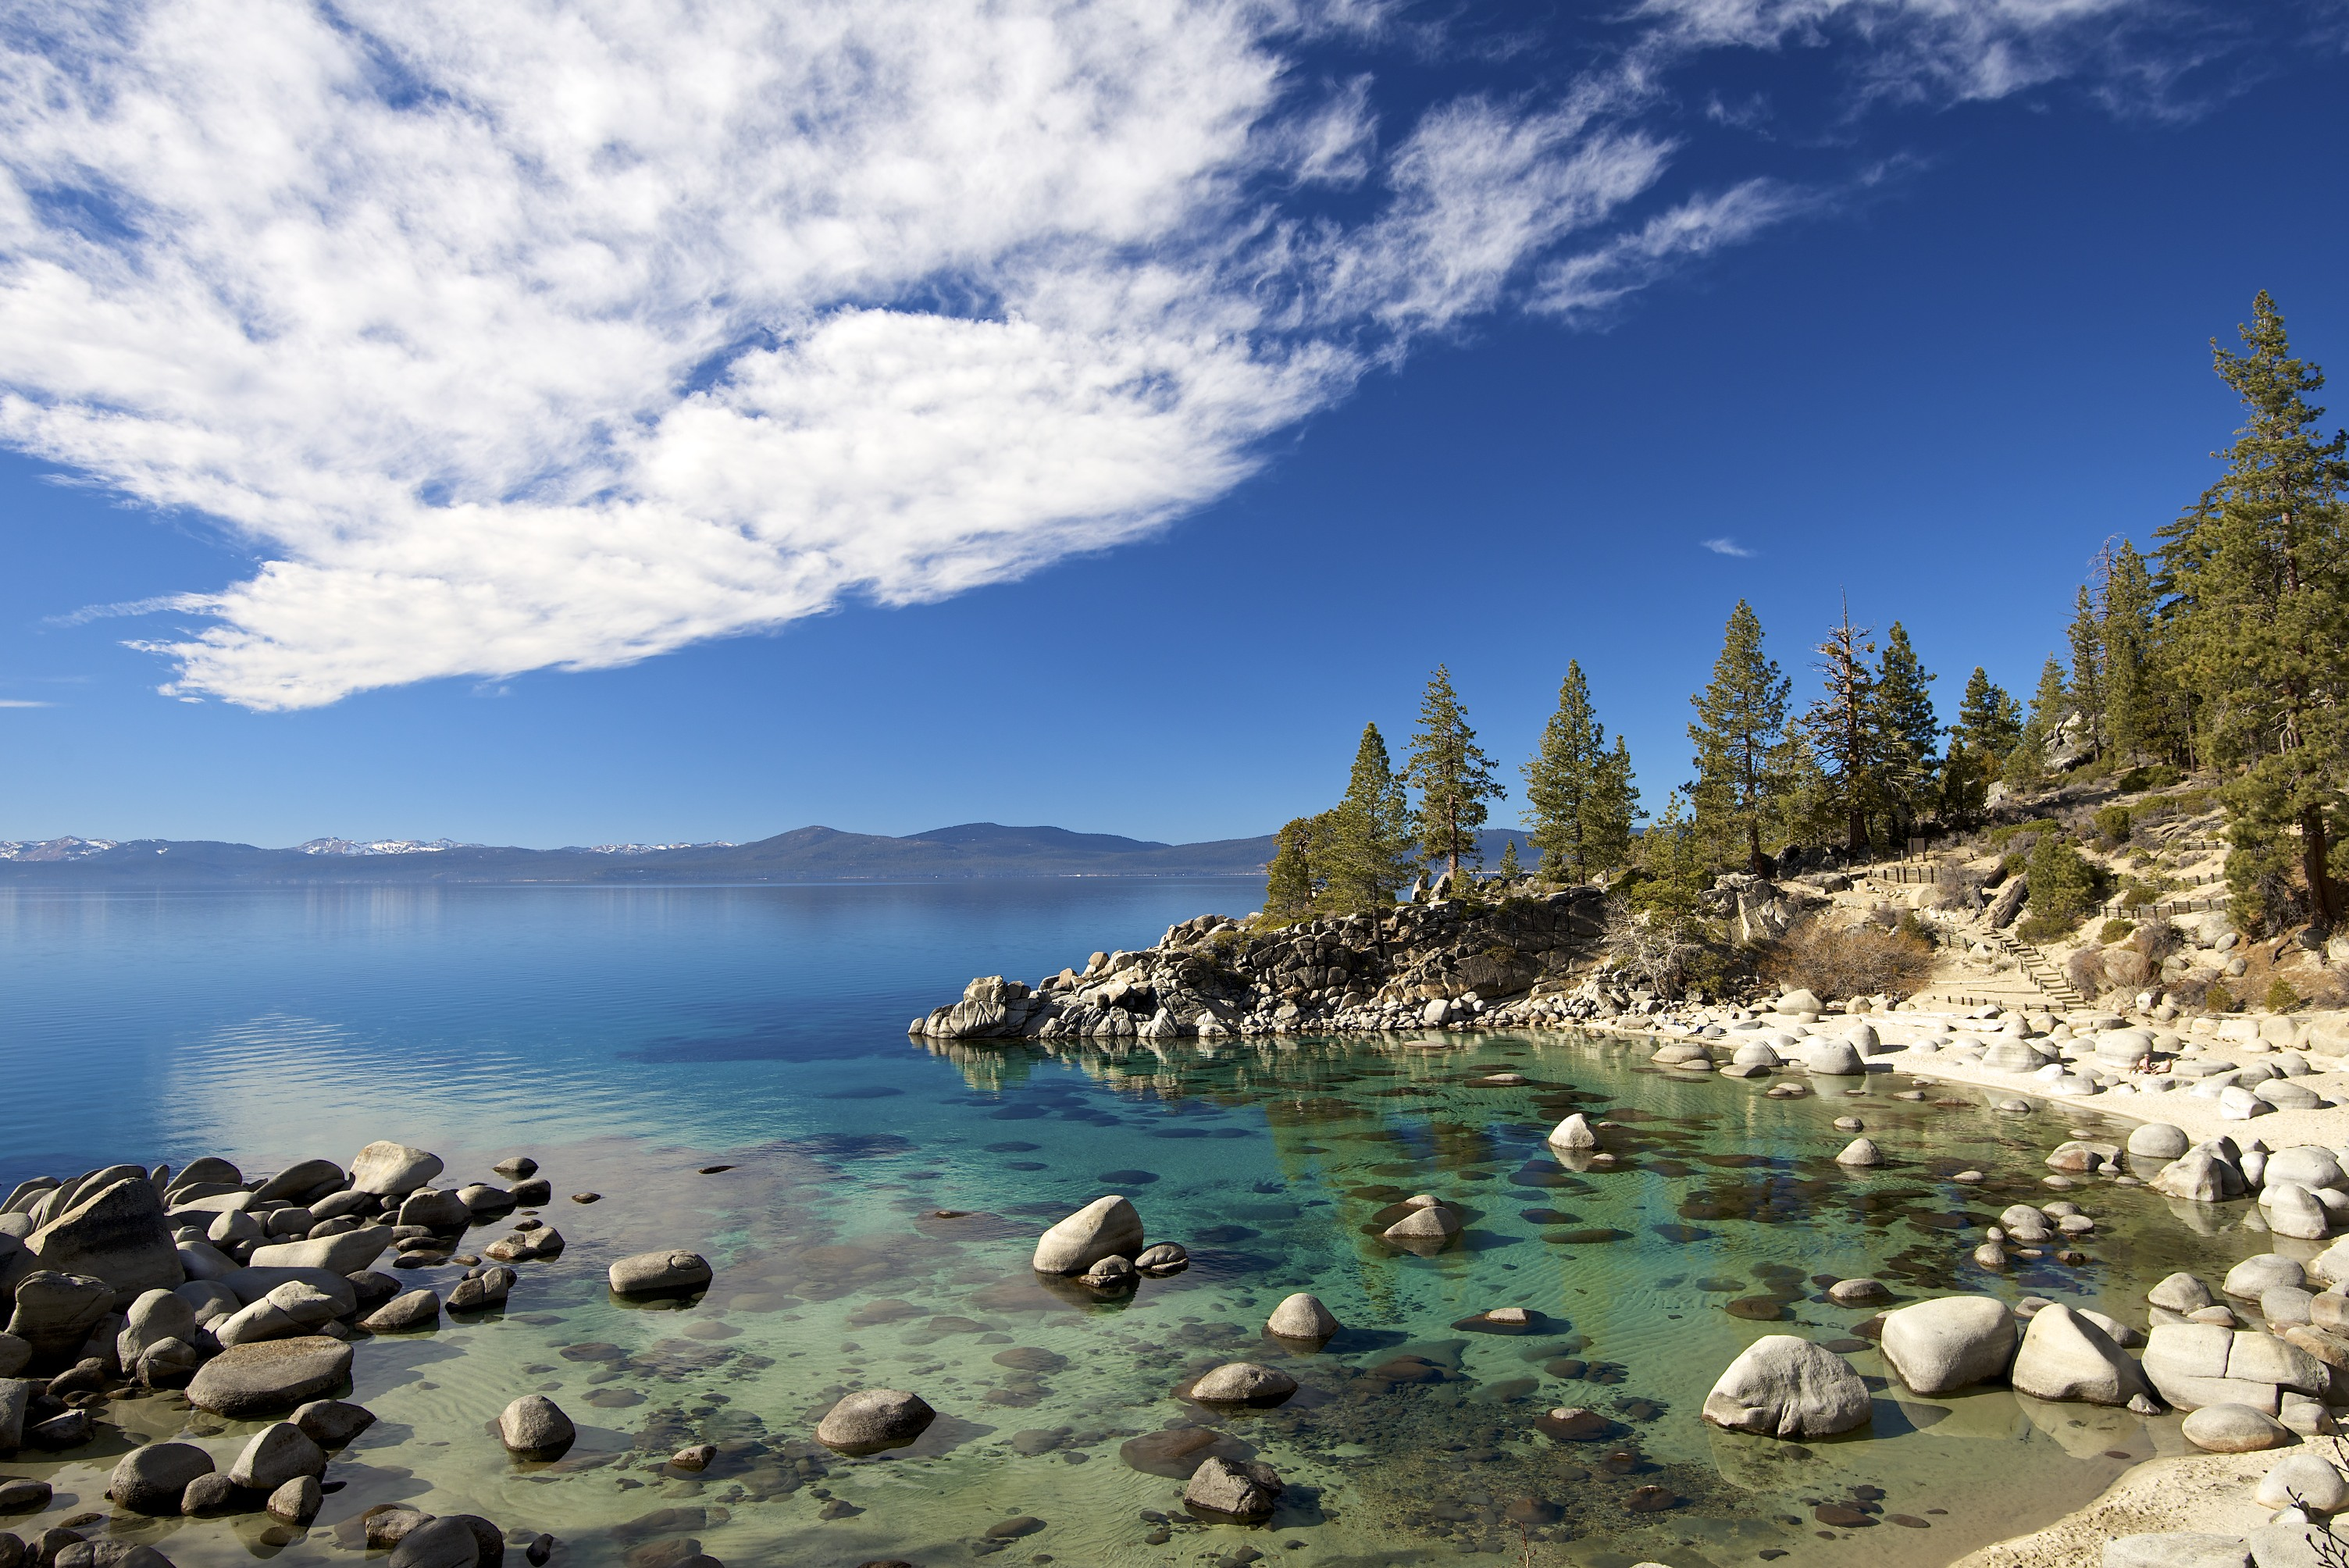 Secret Harbor Cove, Lake Tahoe. by Steve Dunleavy, on Flickr